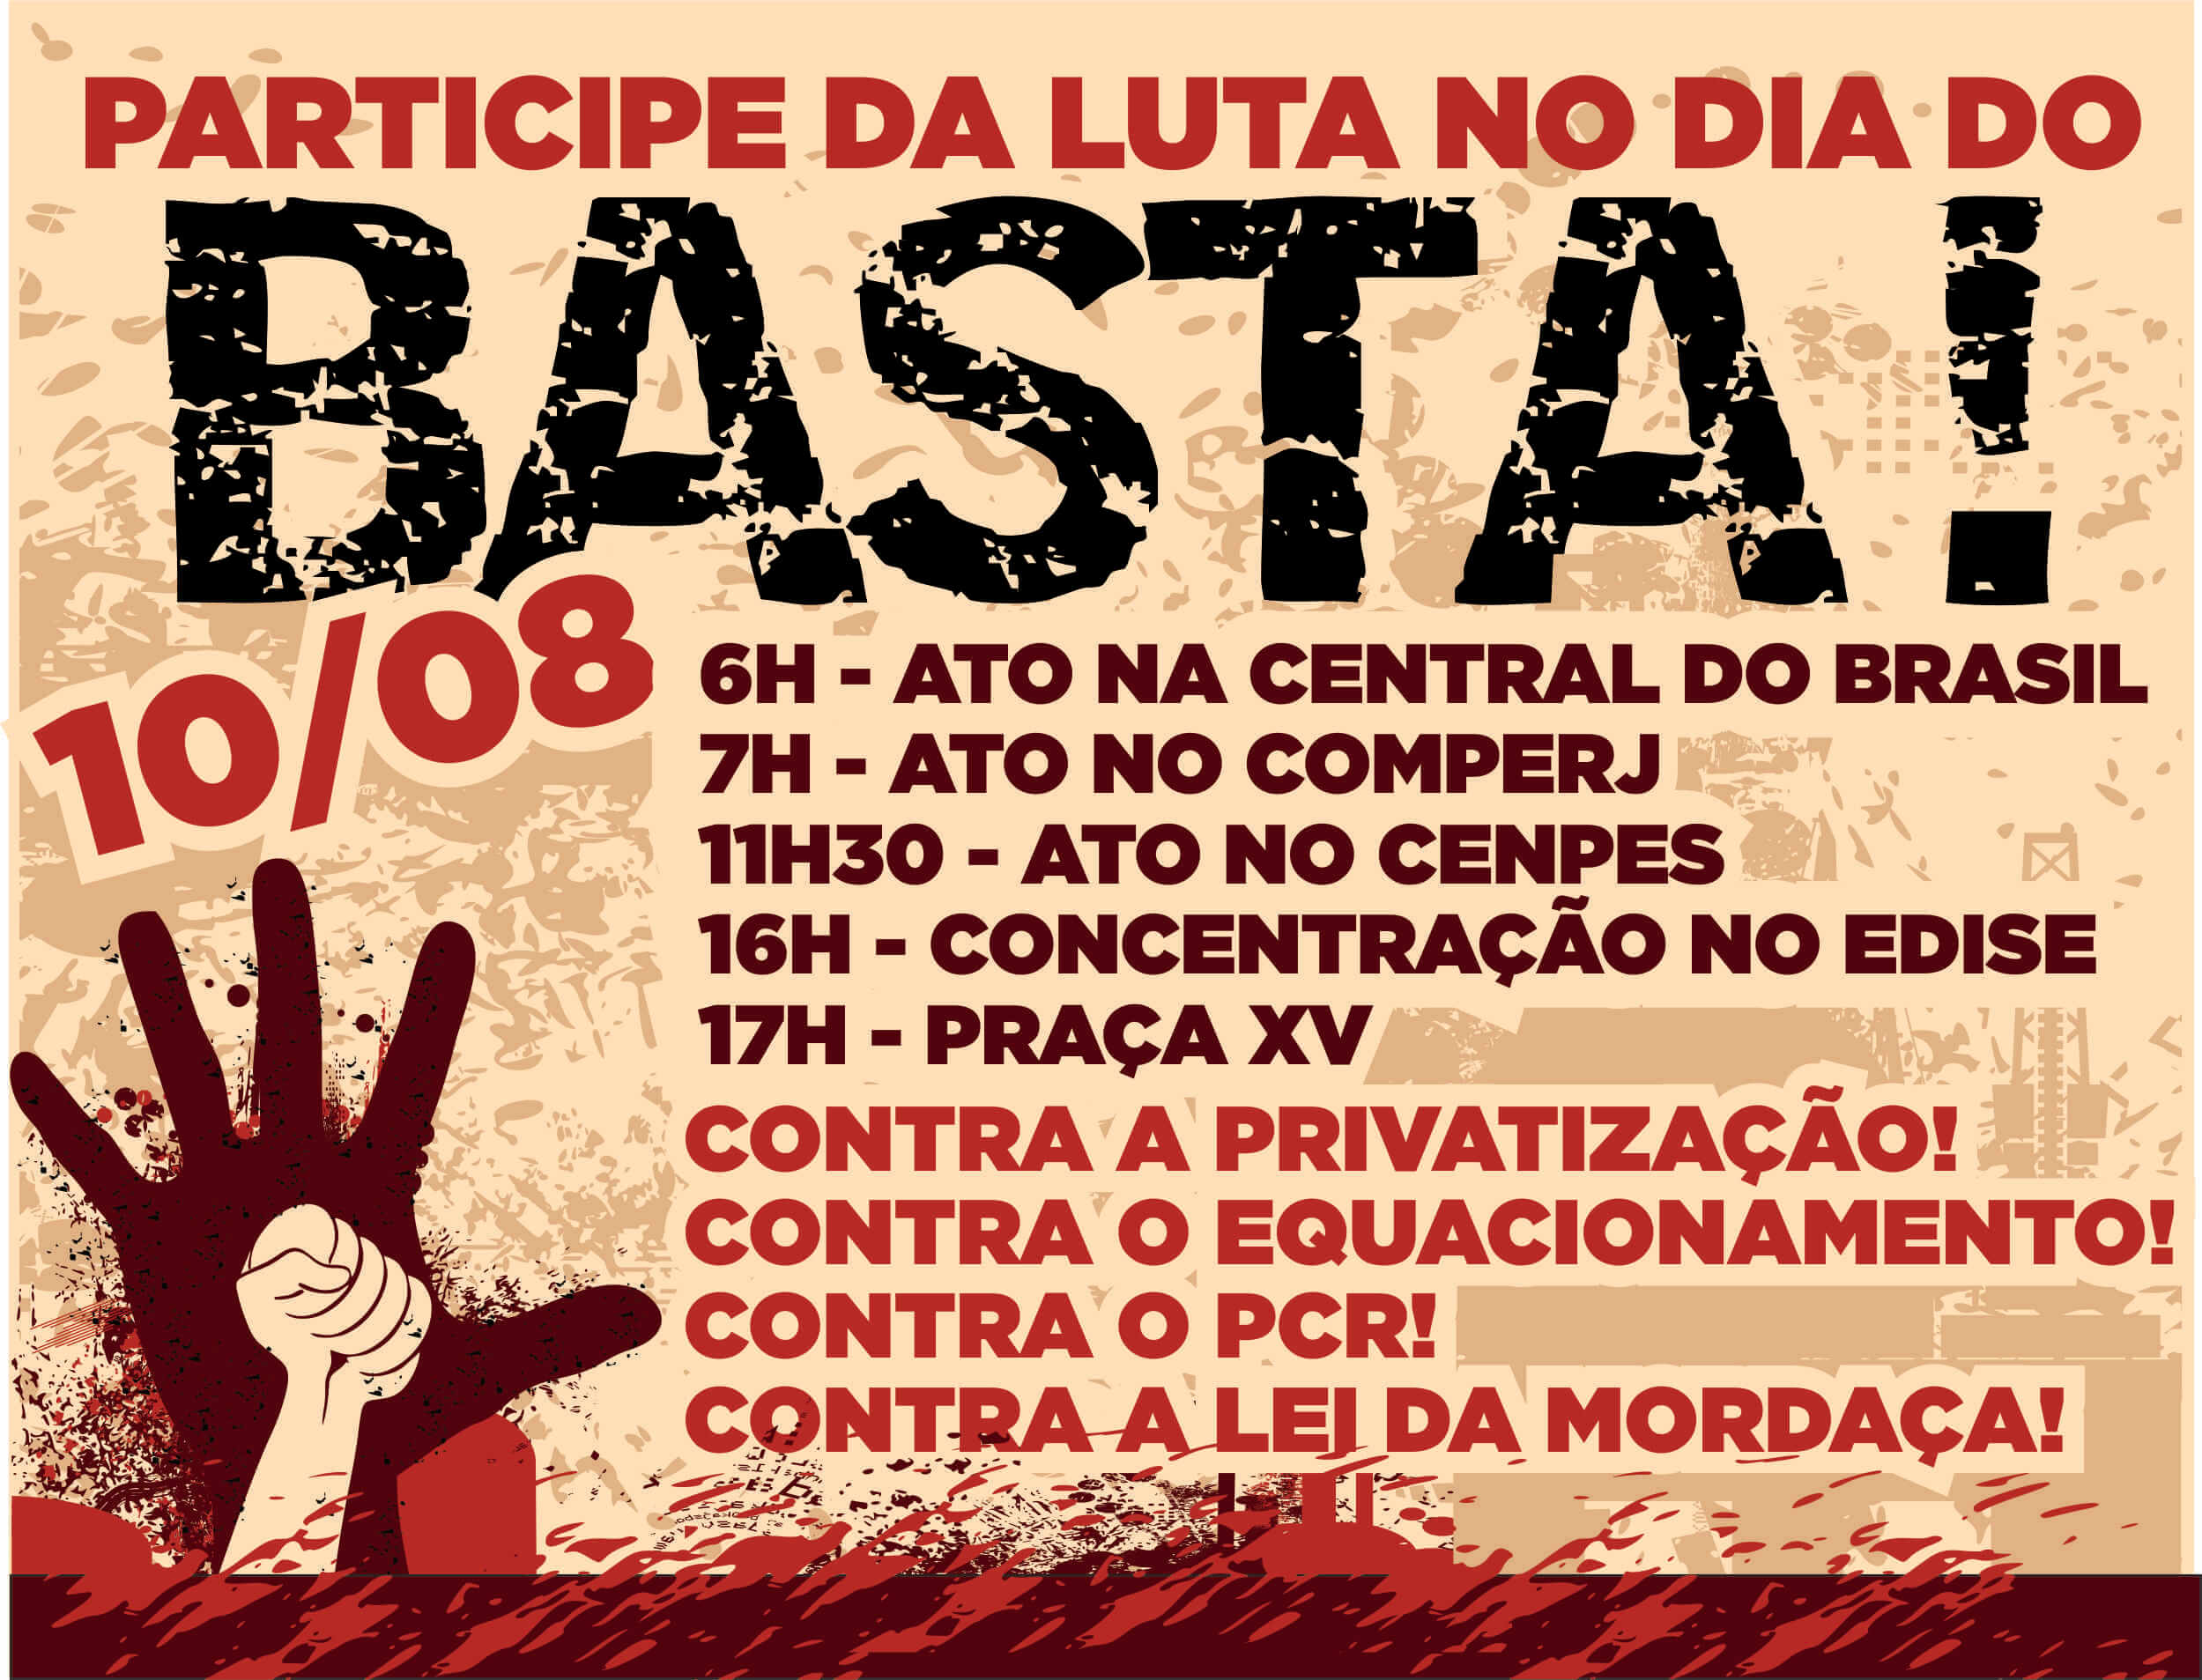 DIA DO BASTA! CARTAZ DIA DO BASTA ZAP 4  DIA DO BASTA! CARTAZ DIA DO BASTA ZAP 4